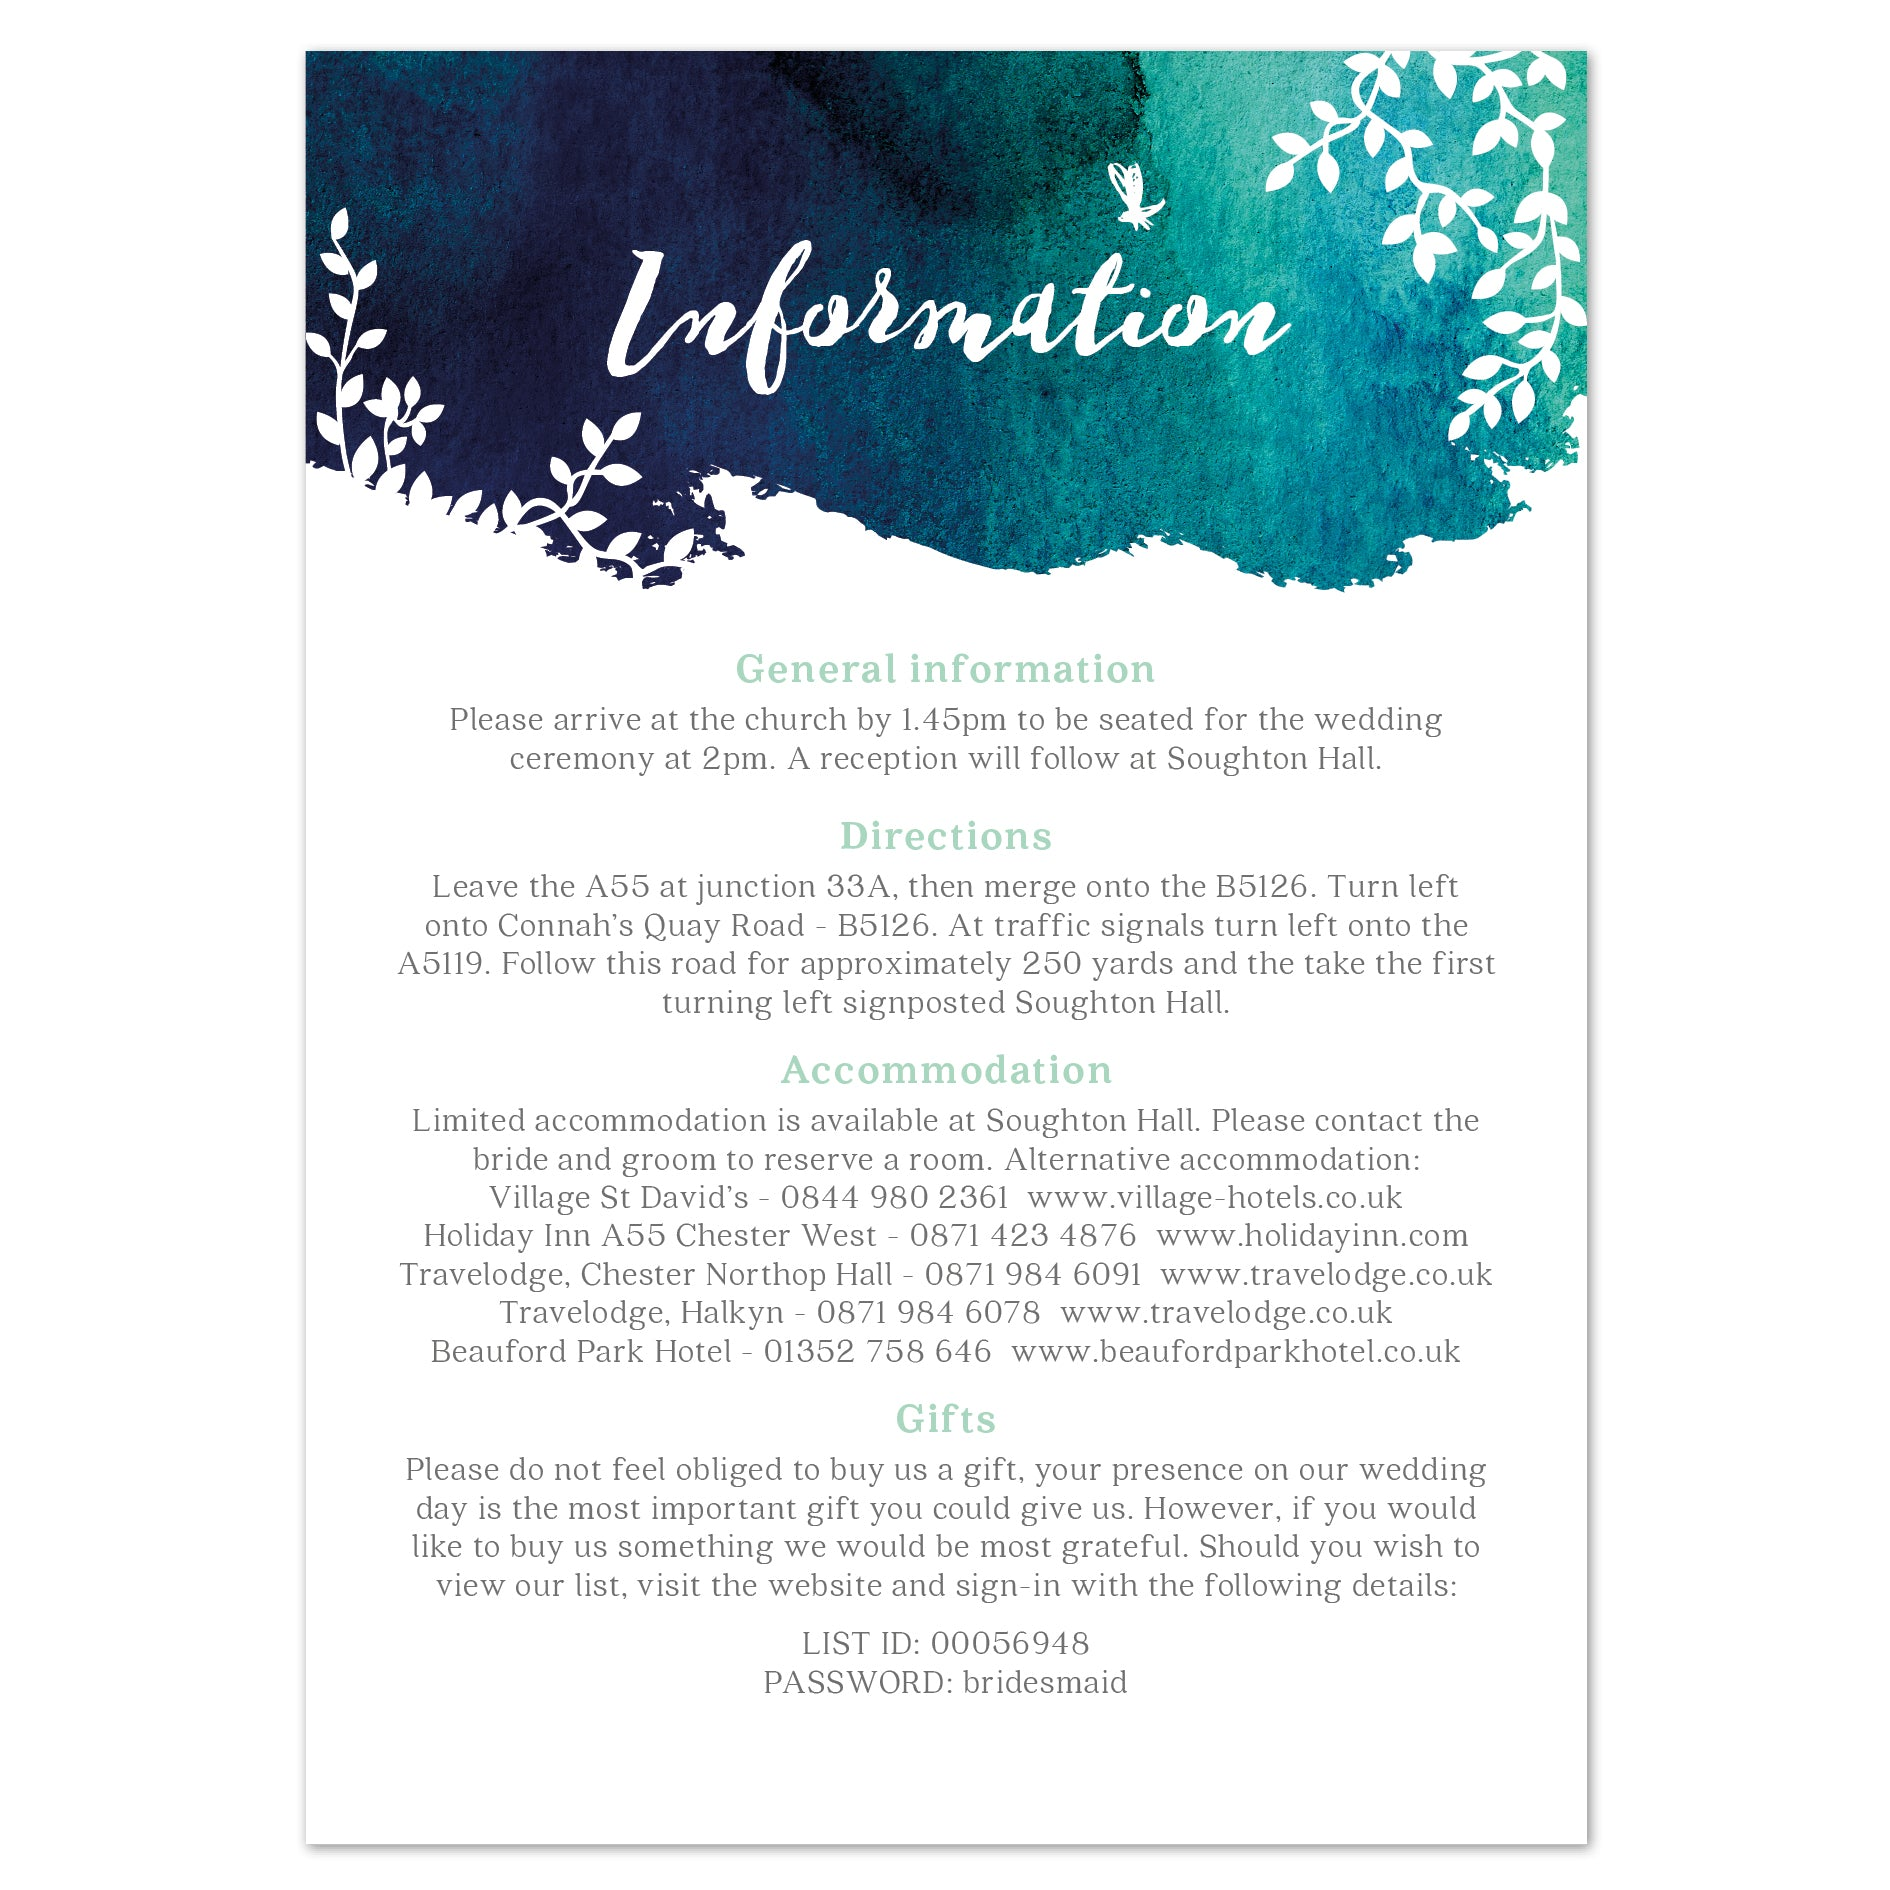 Helena information card